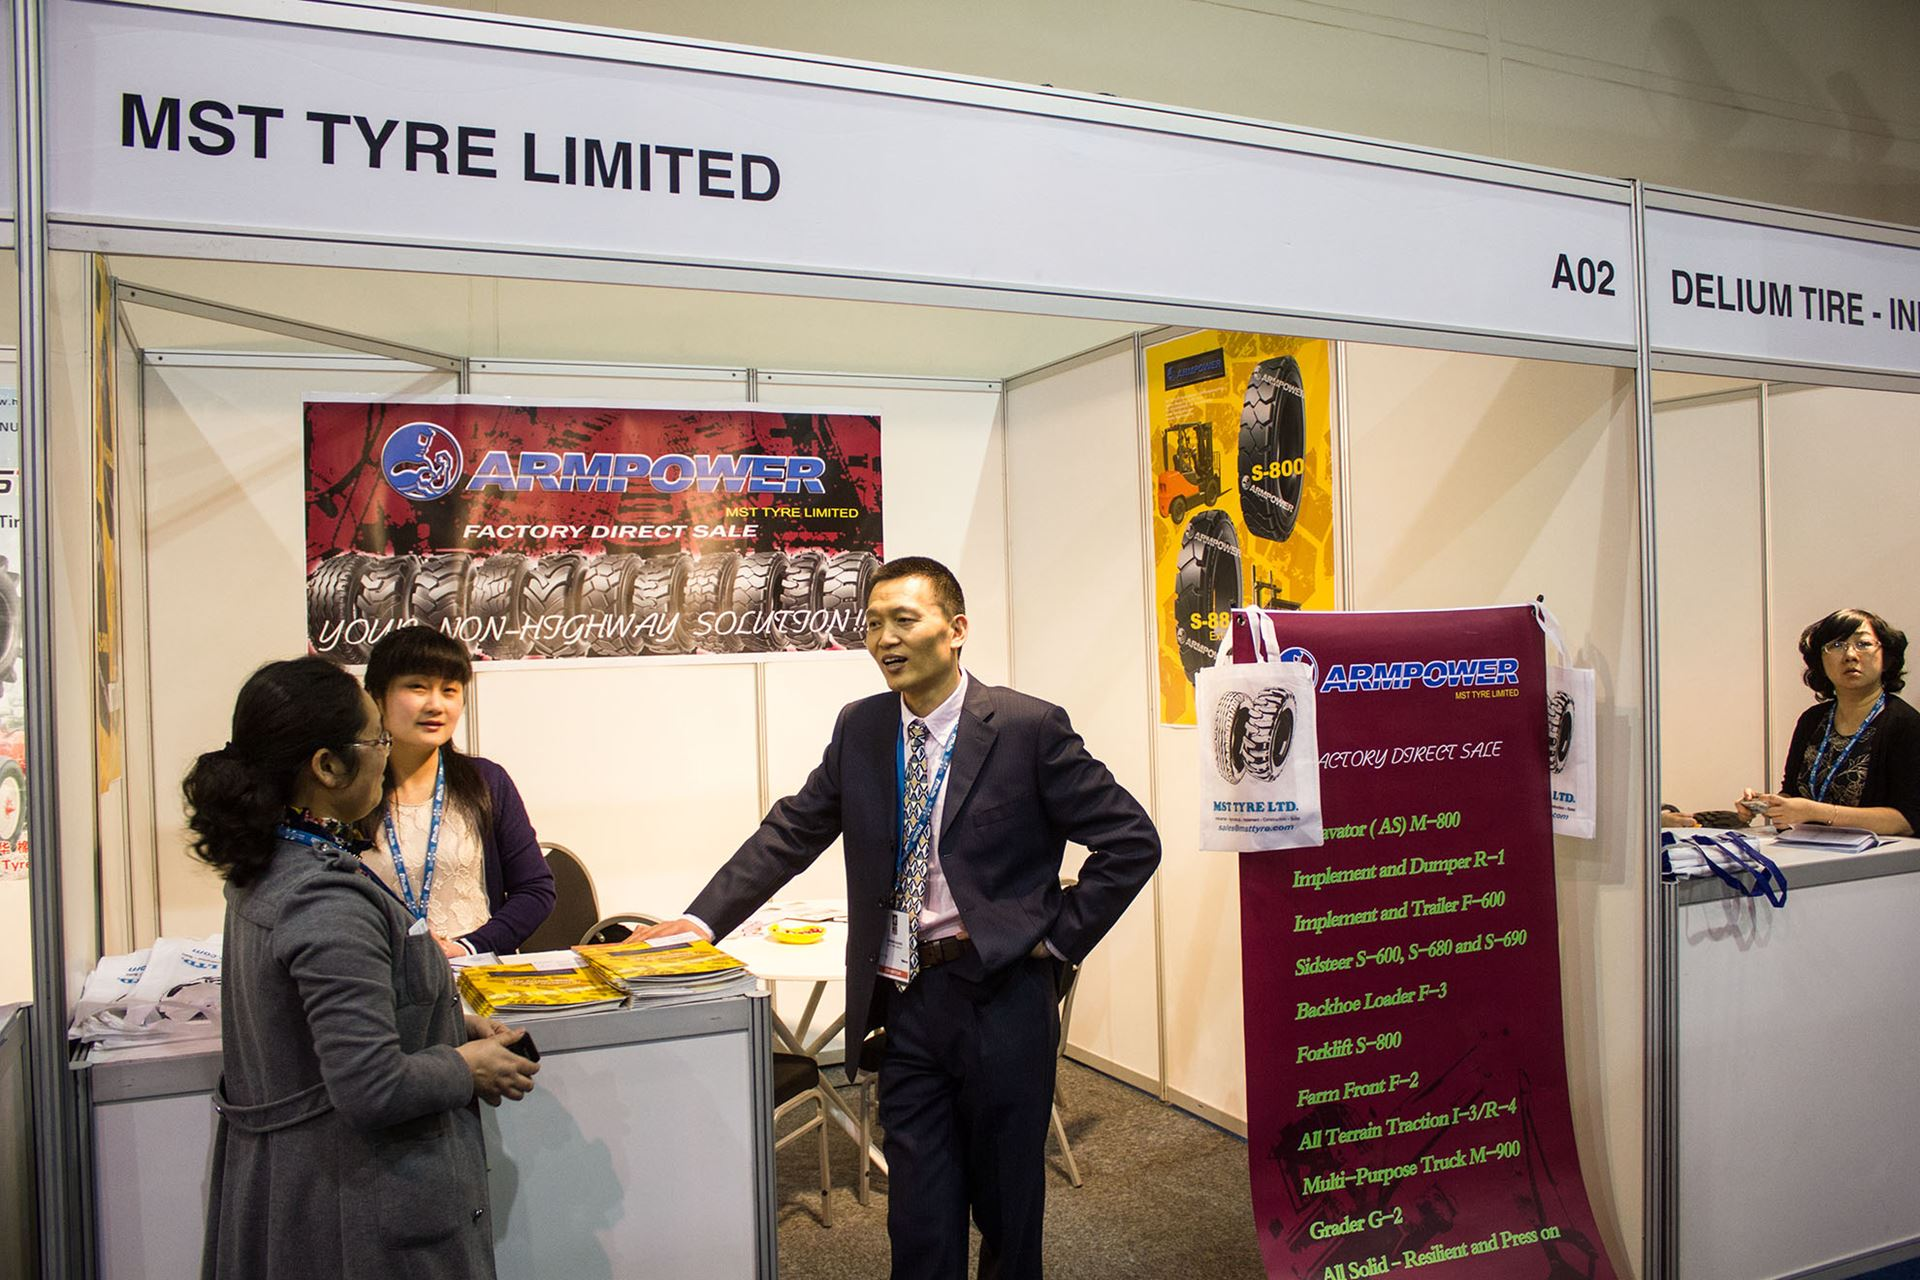 Tyre-Expo-South-Africa-2014-MST-Tyres